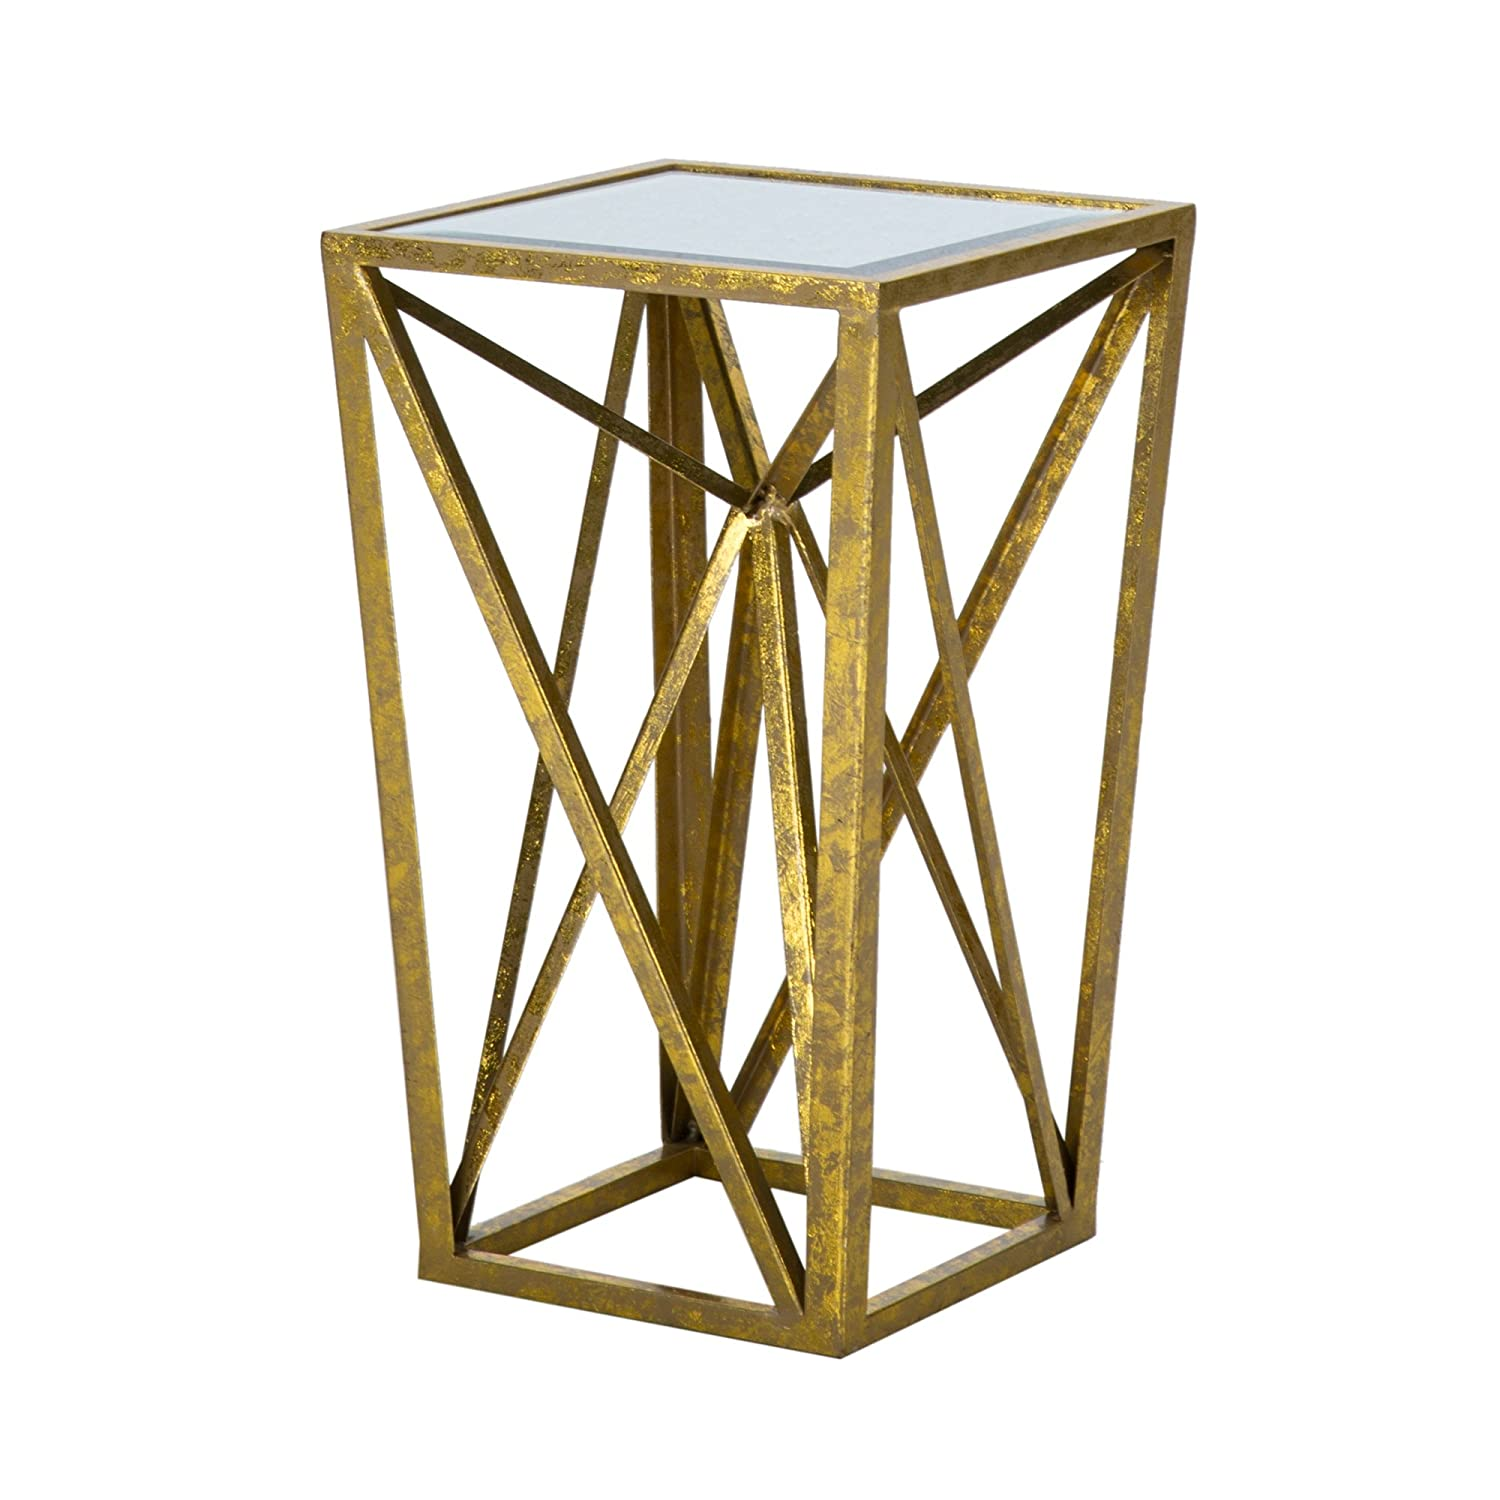 Madison park zee accent tables mirror glass metal side table gold angular design modern style end tables 1 piece glass top hollow round small